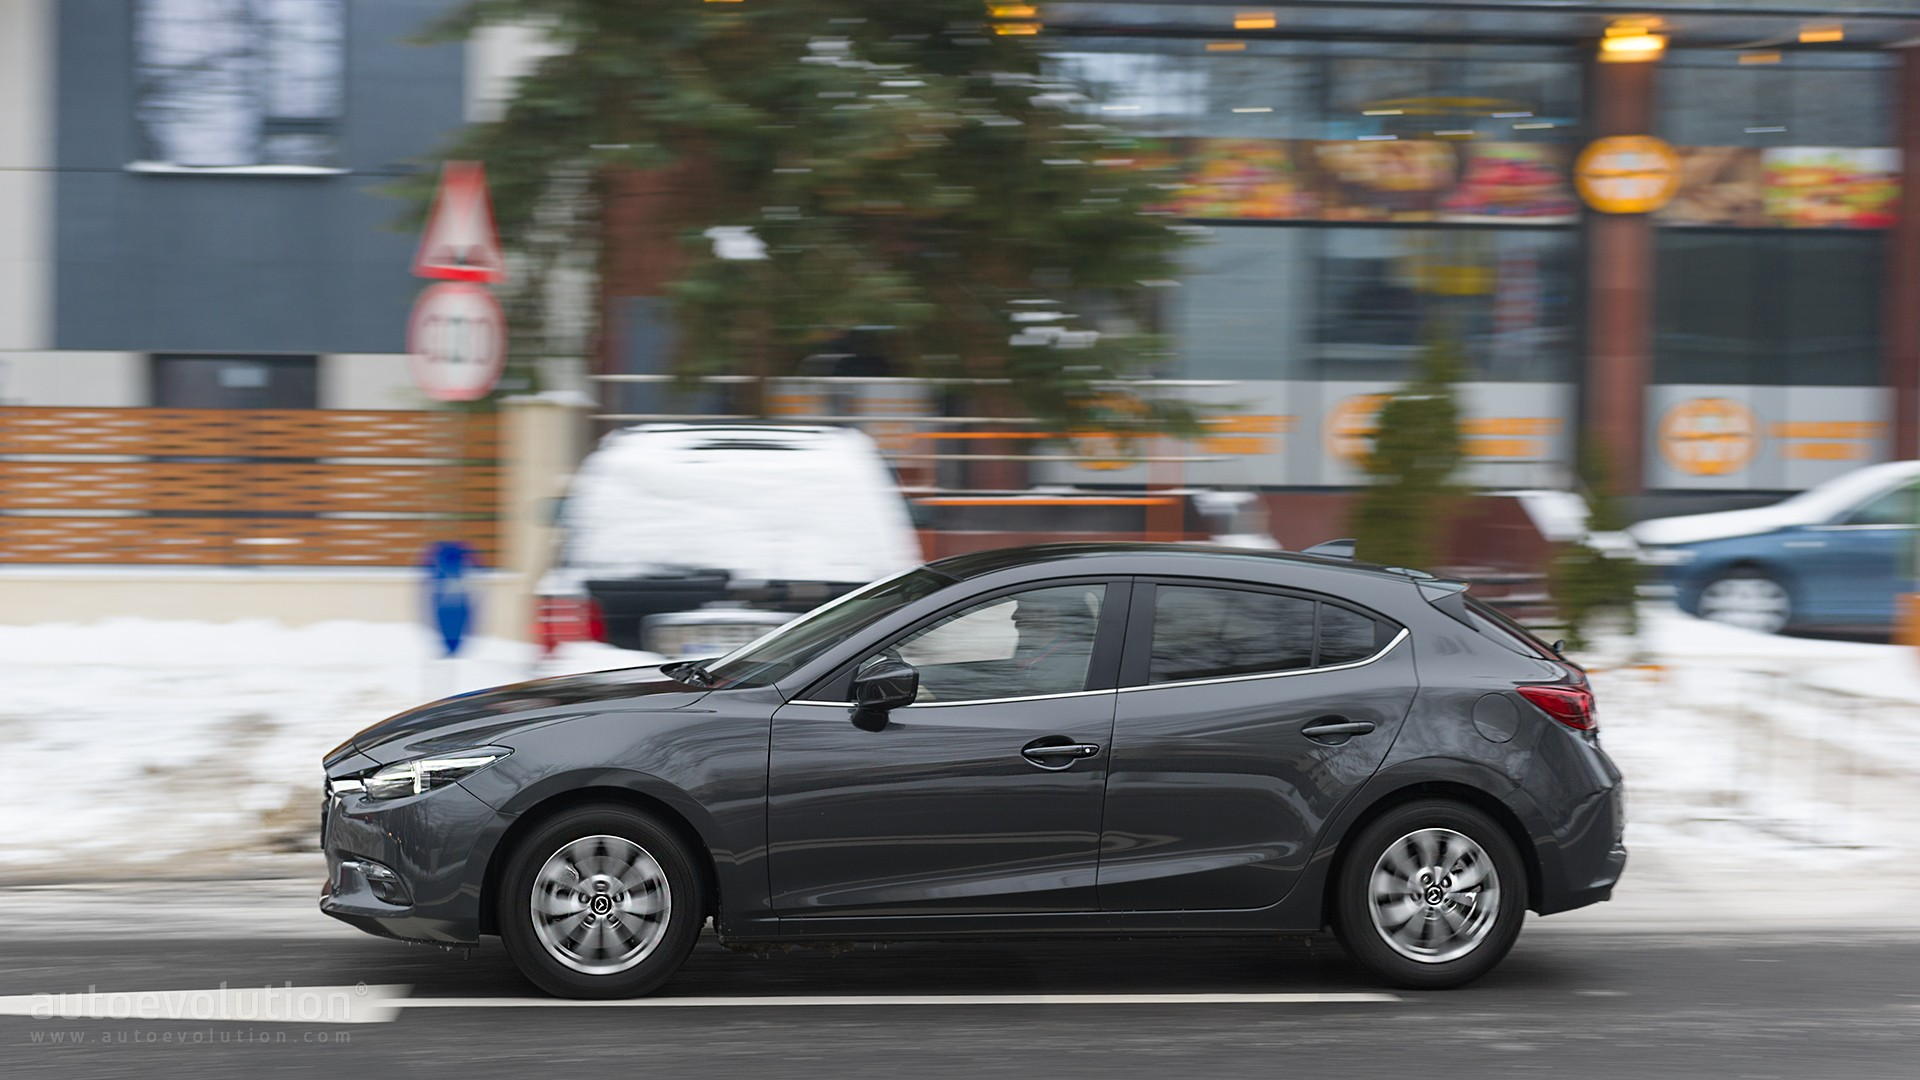 Consumer Reports Lists The Best Used Cars Under $20,000